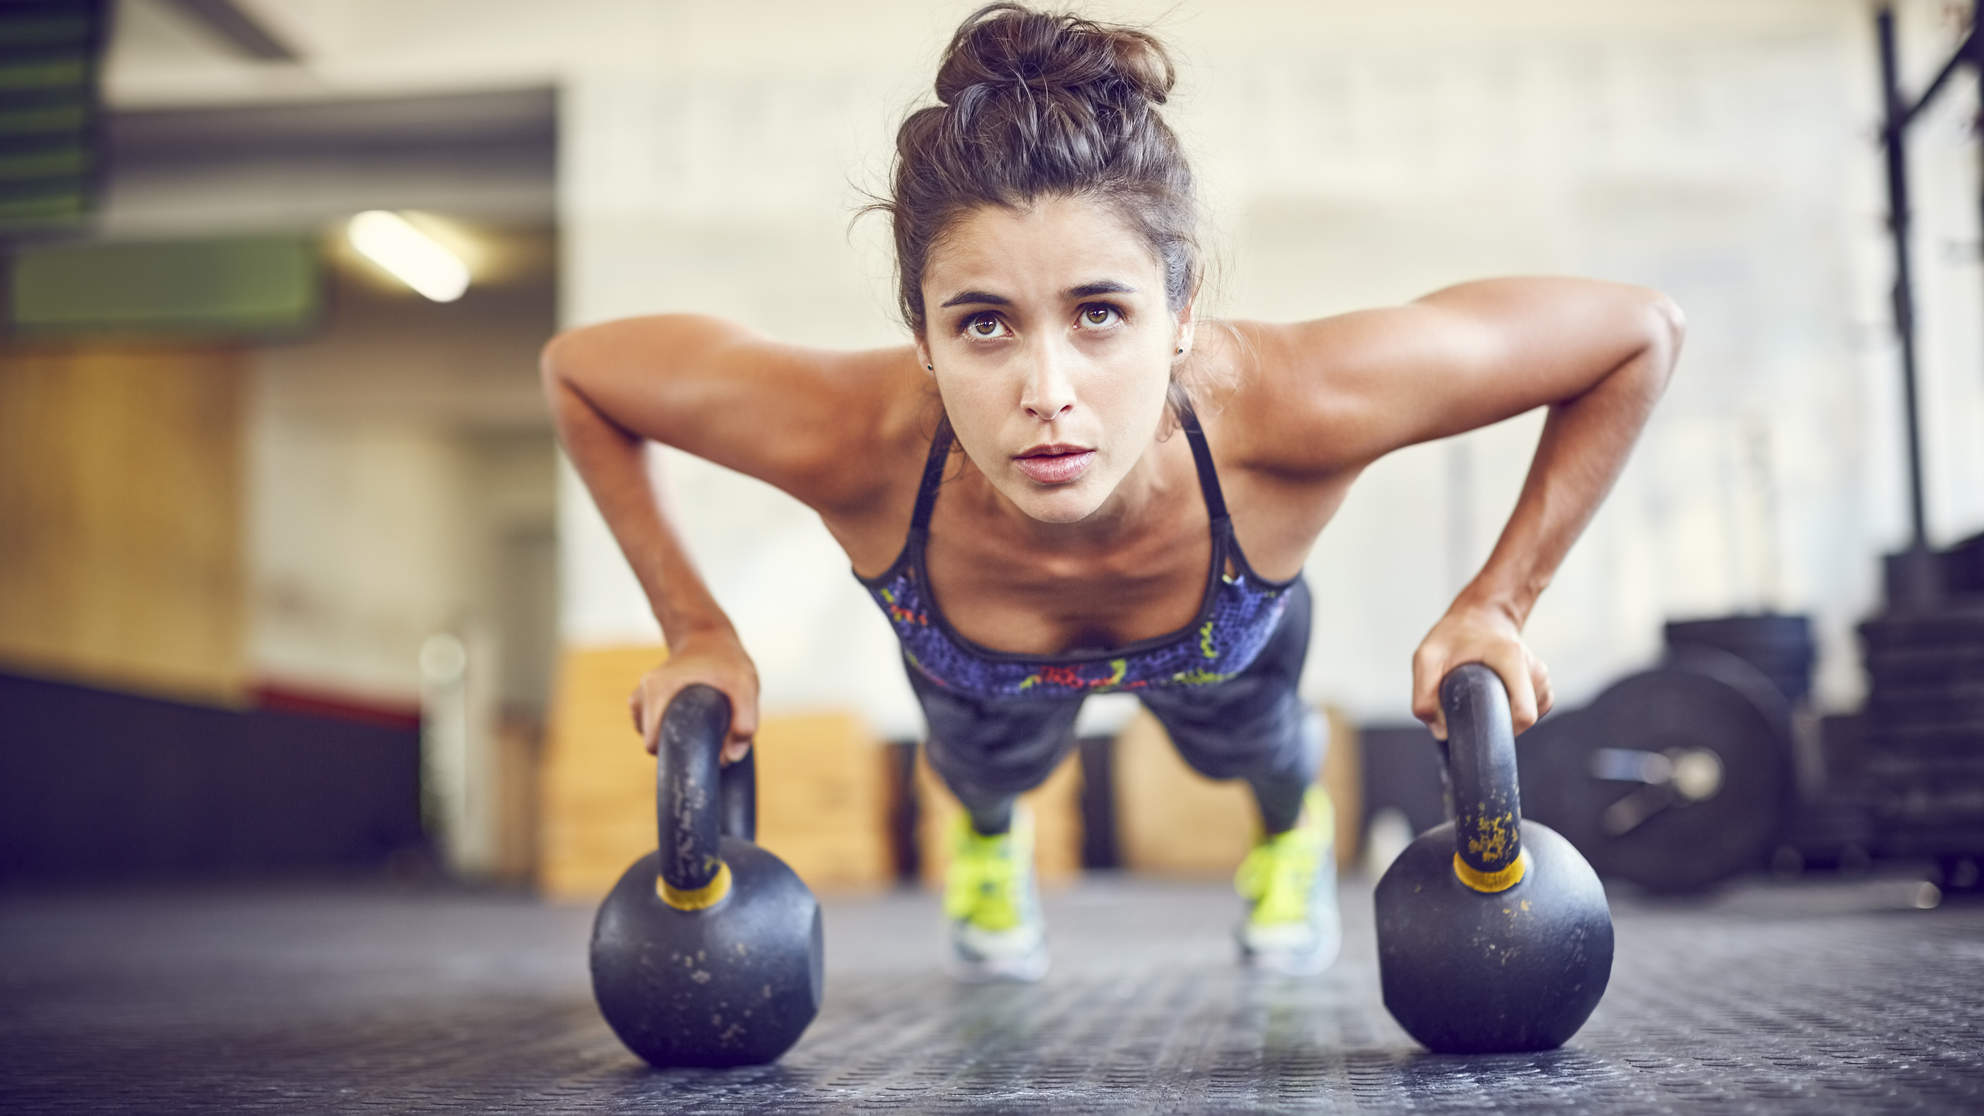 11 Secrets of Women Who Actually Work Out at Lunch